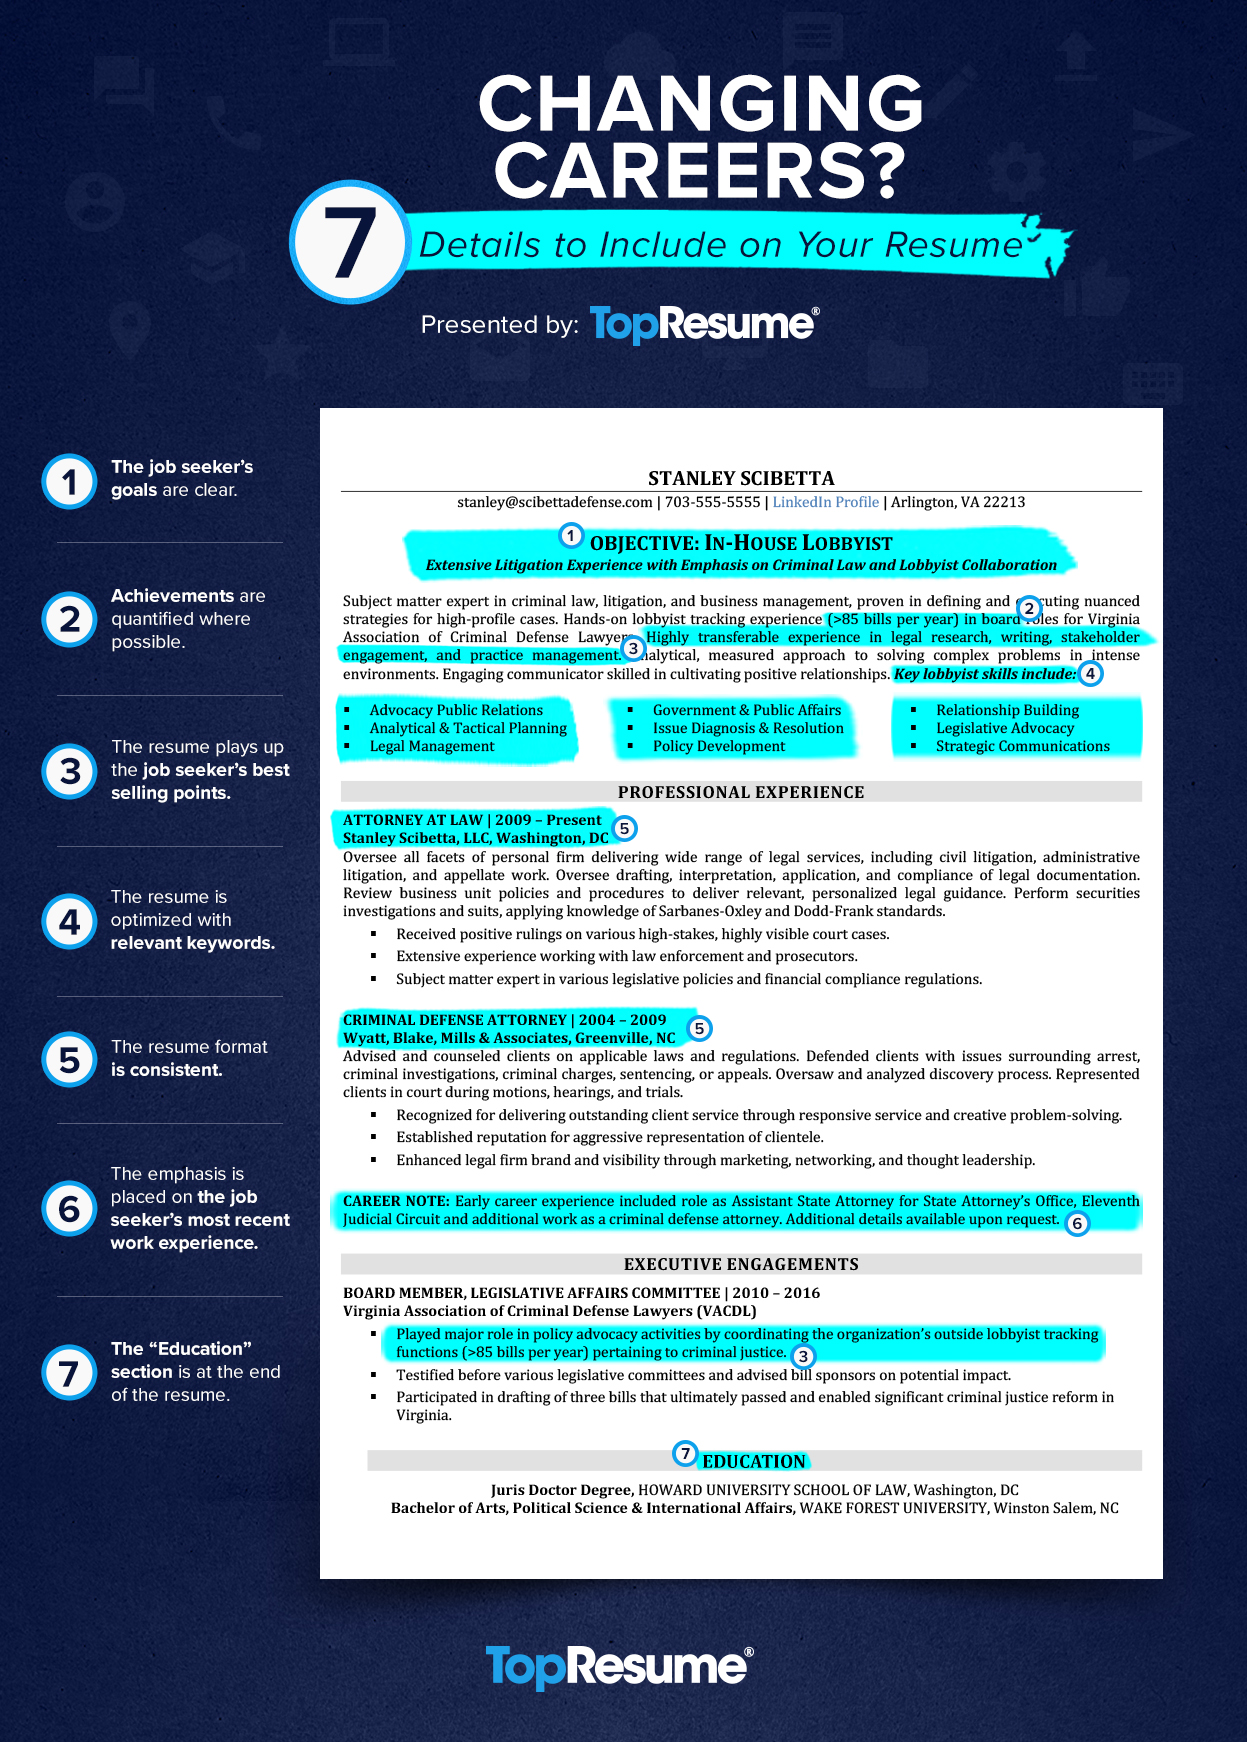 resume for career changers  Changing Careers? 7 Details to Include on Your Resume | TopResume